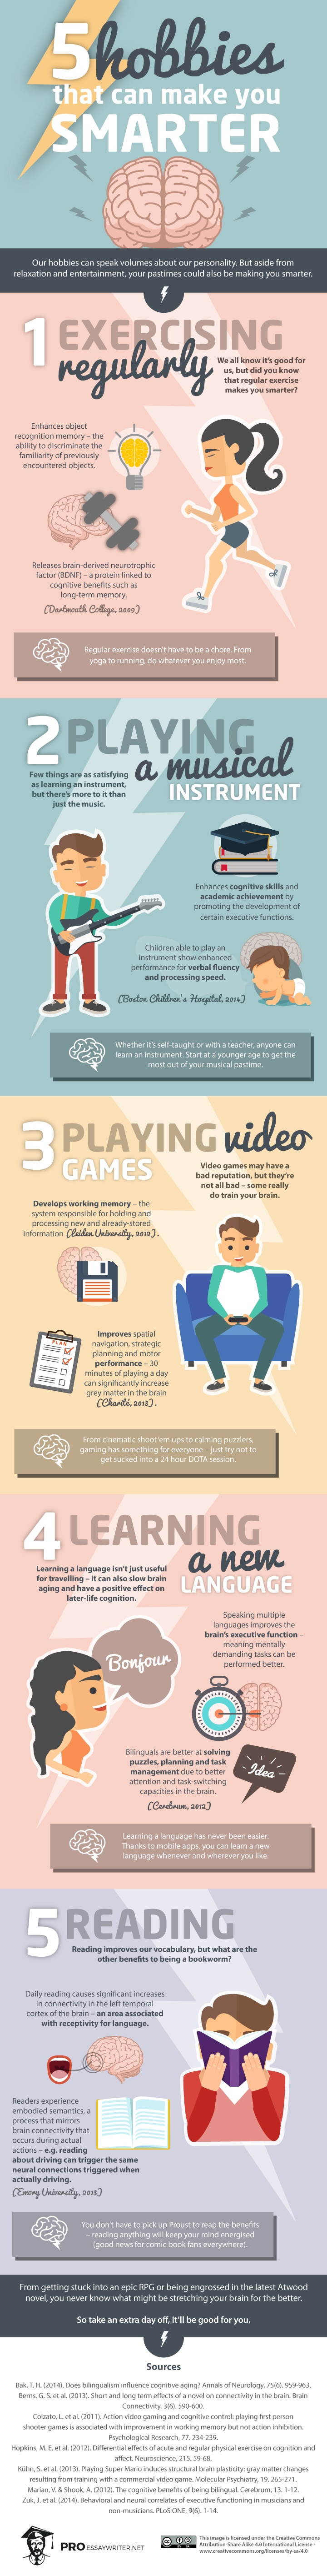 Hobbies That Make You Smarter